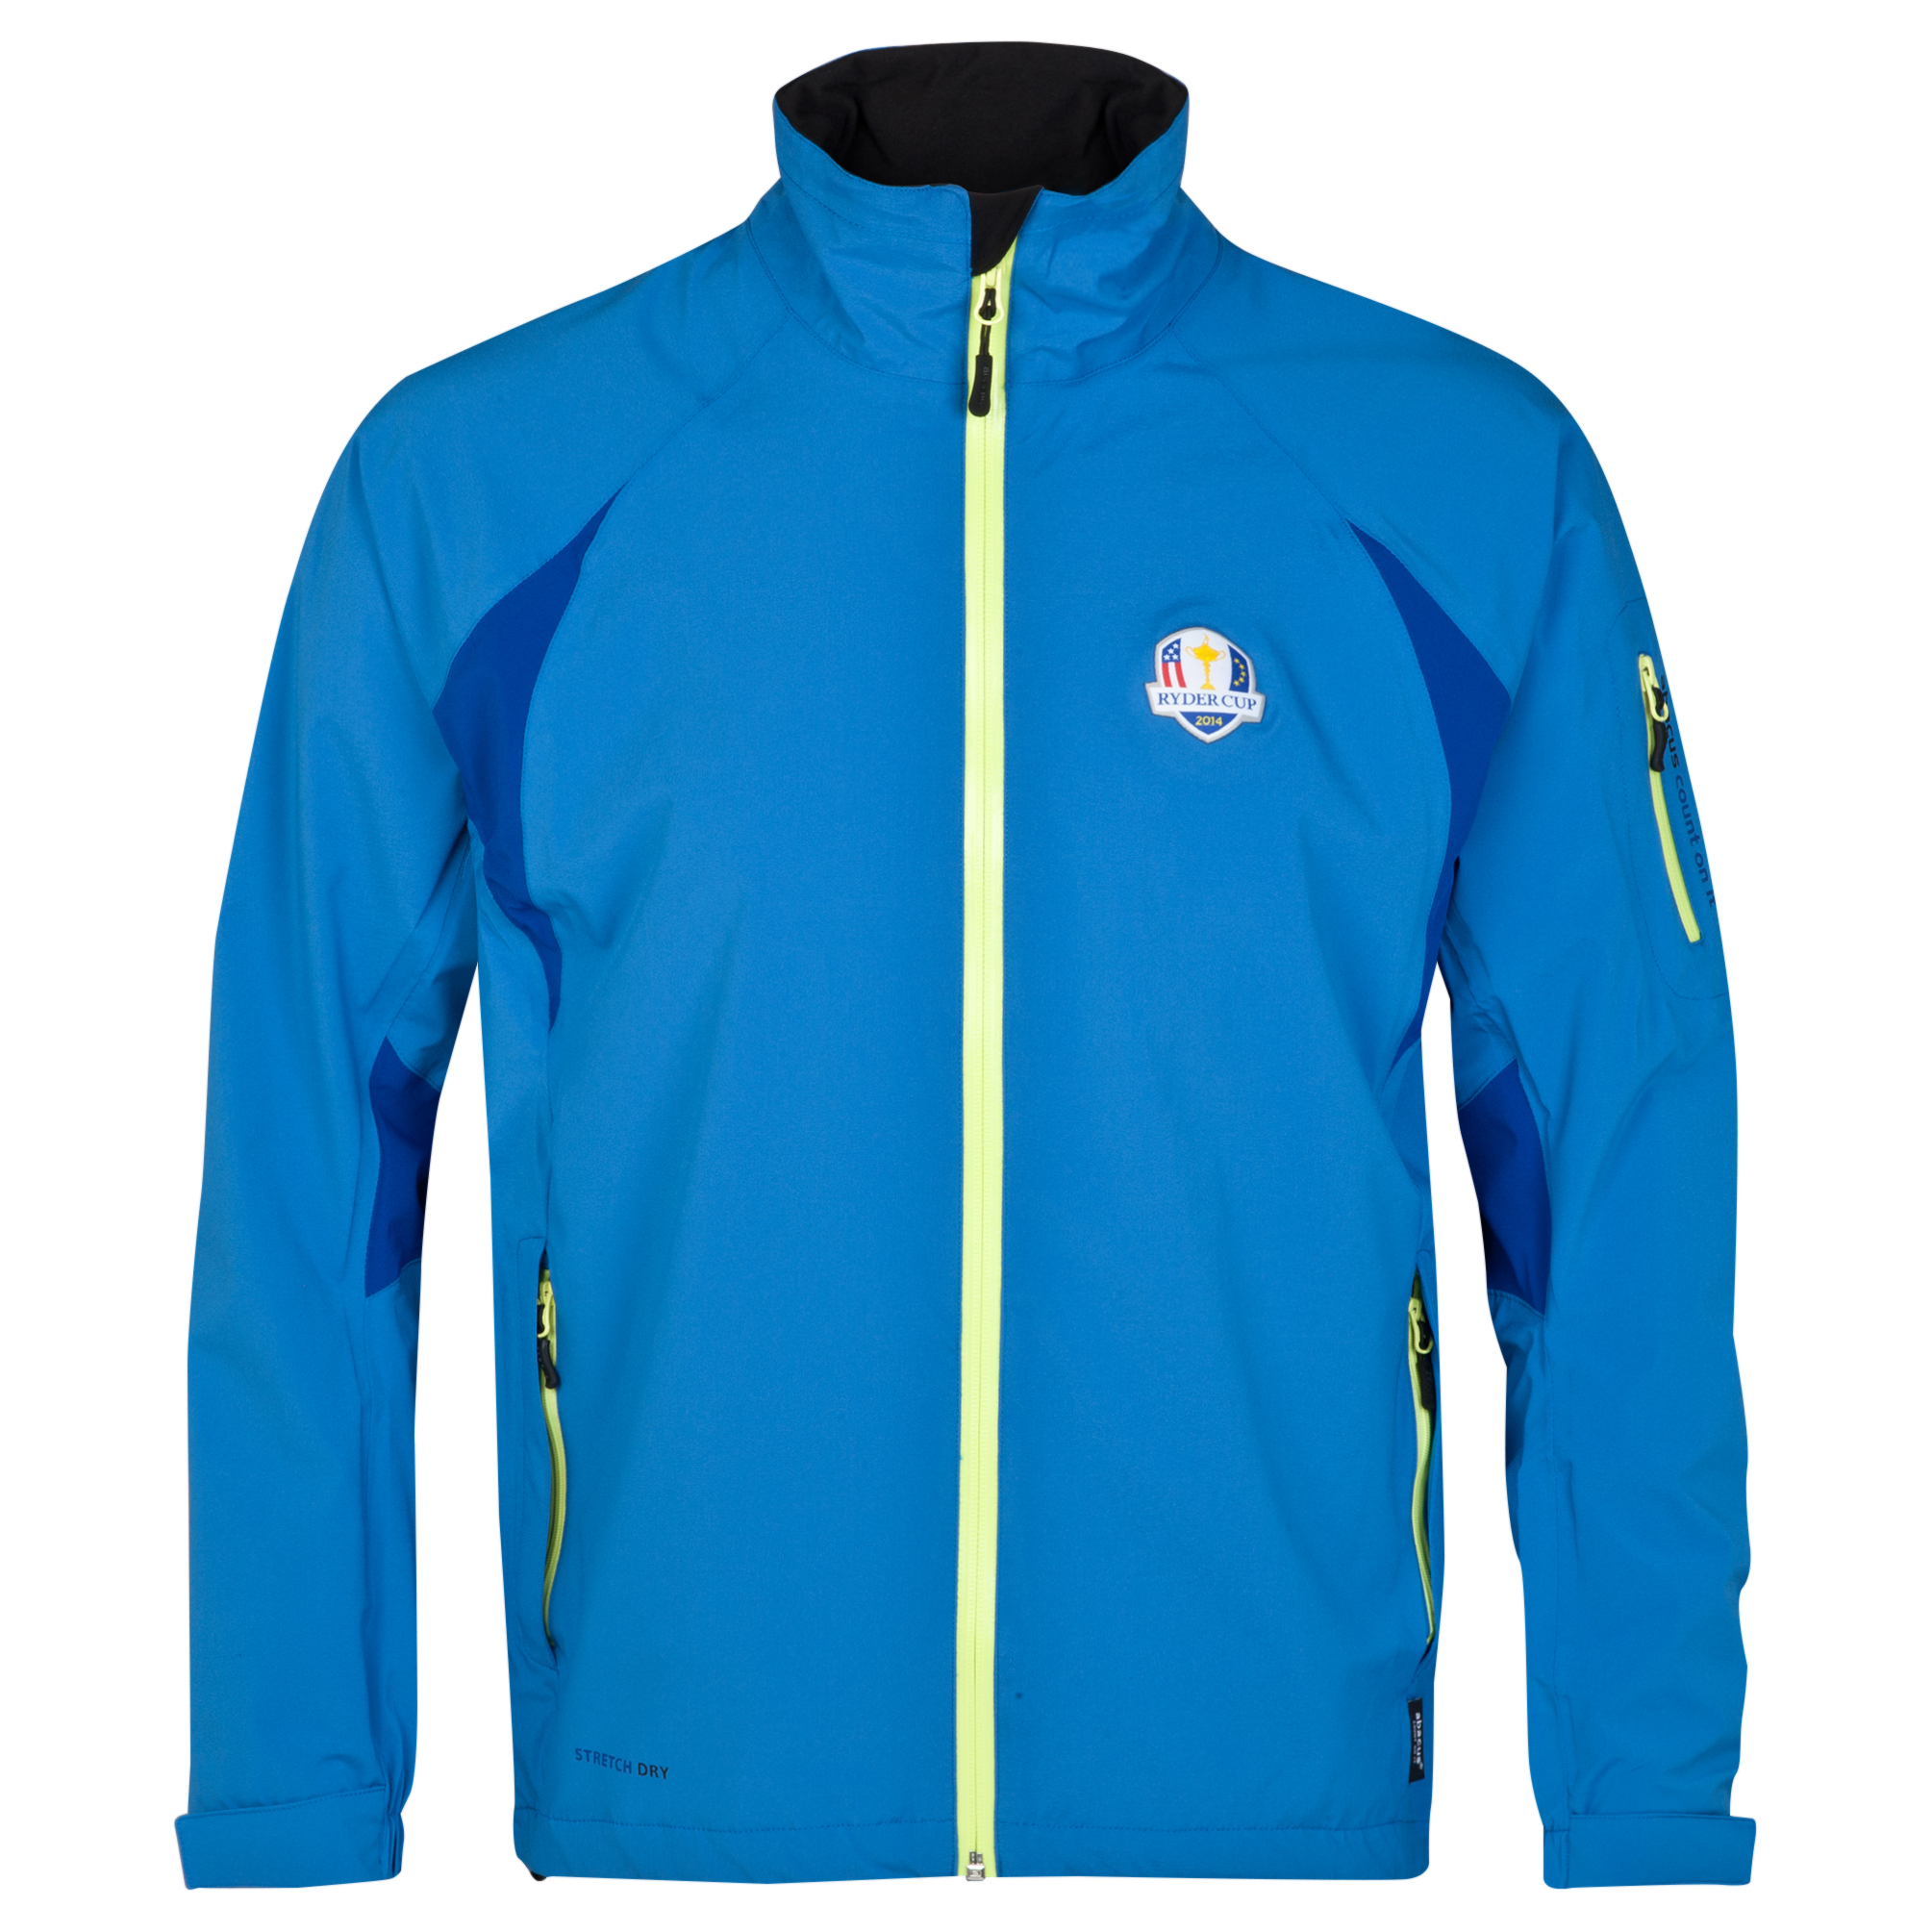 The 2014 Ryder Cup abacus Mens Nipton Rain Jacket - Cobalt